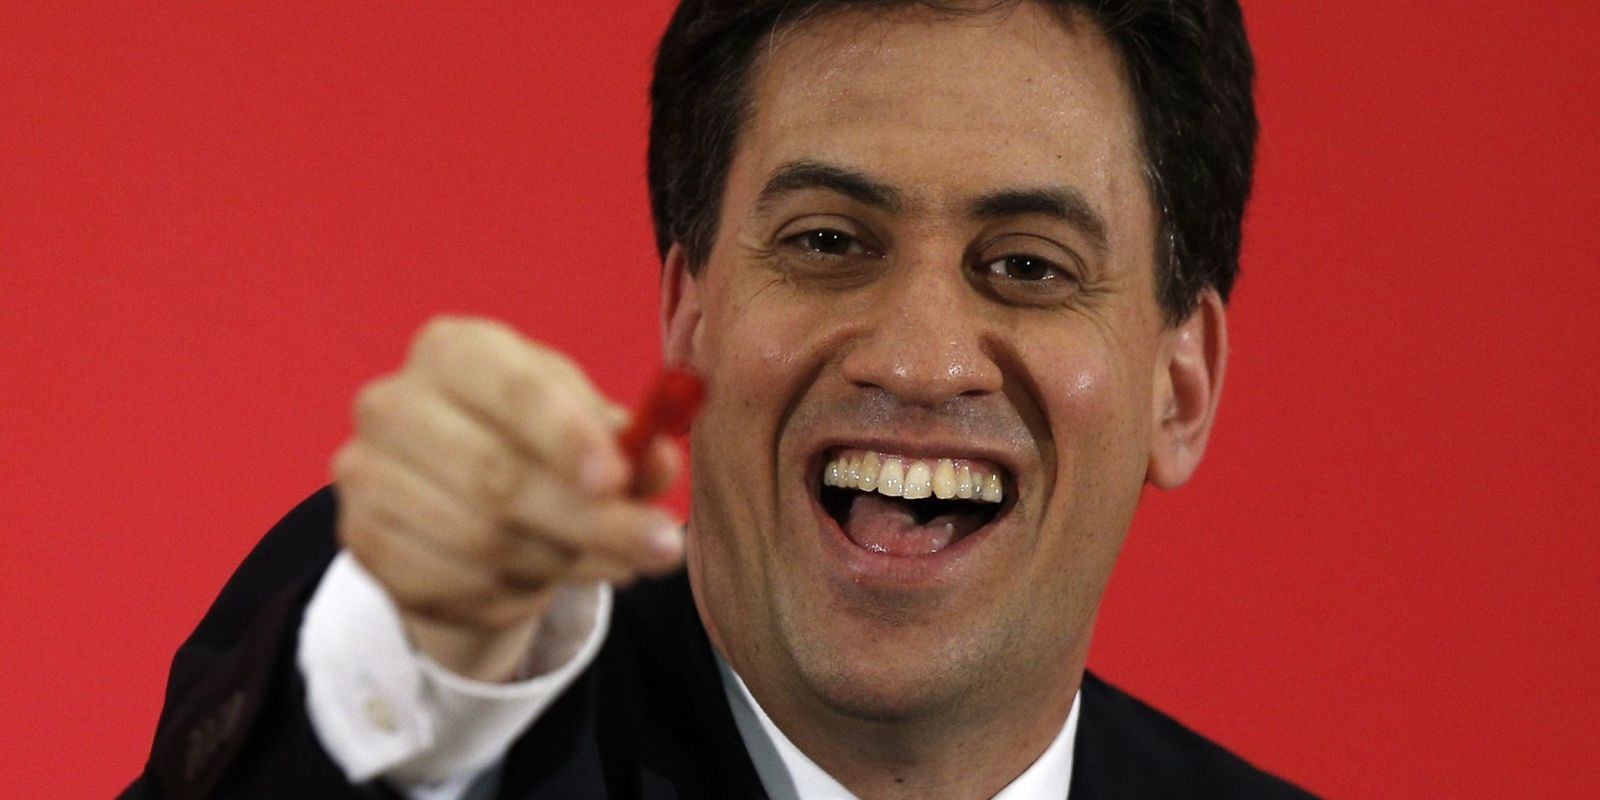 Ed Miliband is making a huge comeback... on Radio 2